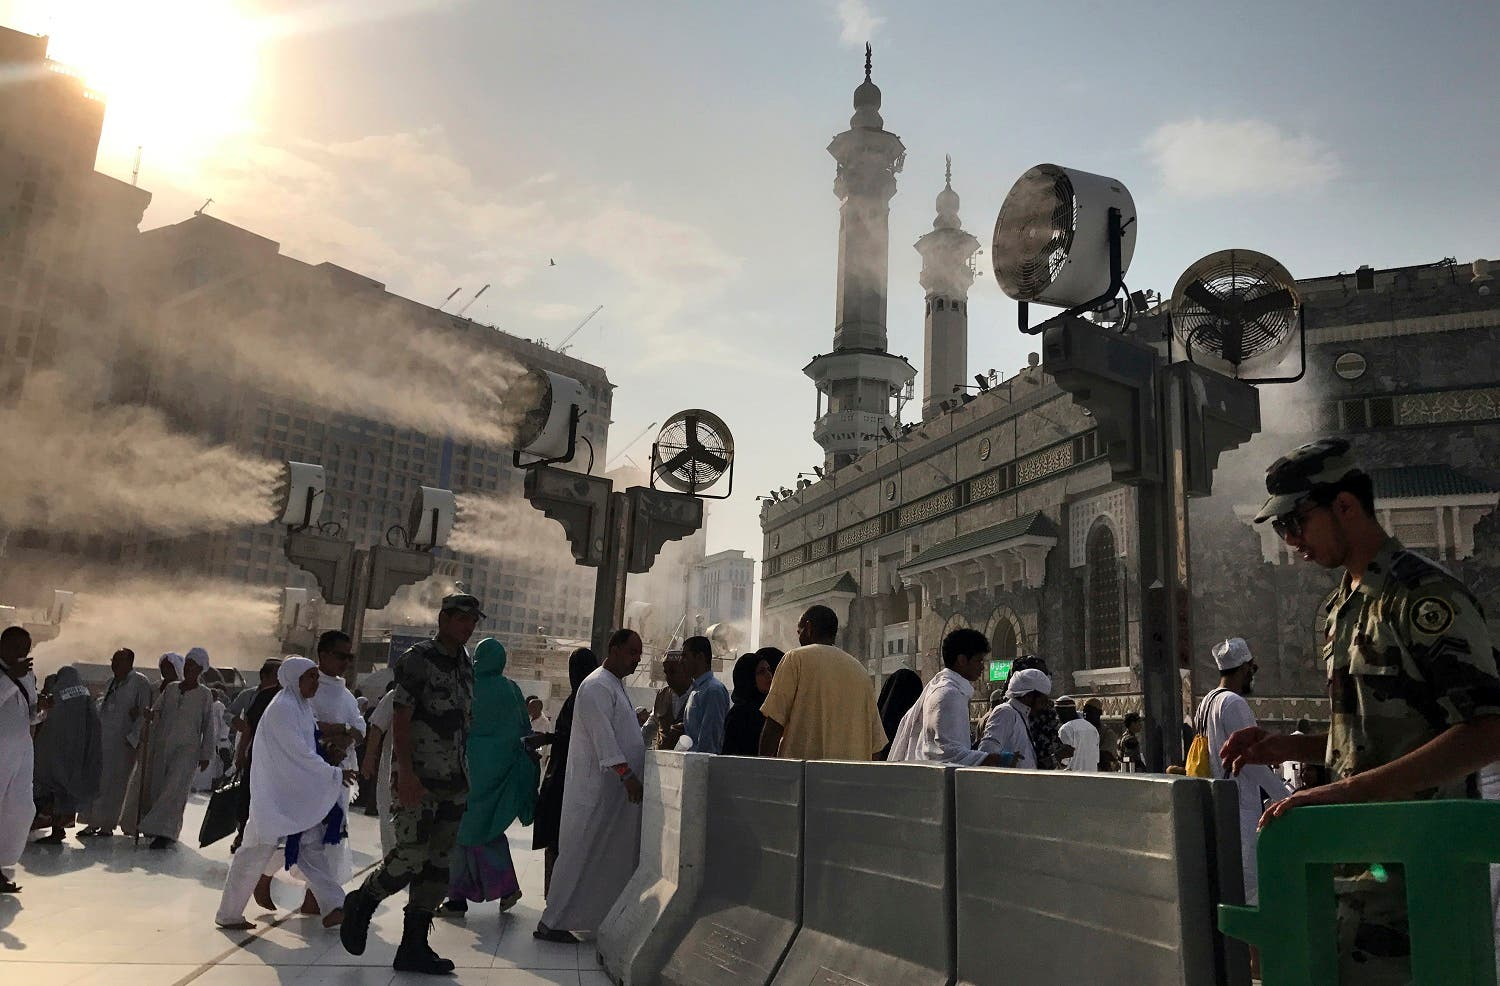 Large cooling fans spray water on Muslim pilgrims around the Grand Mosque ahead of the annual Hajj pilgrimage in the Muslim holy city of Mecca, Saudi Arabia, Tuesday, Aug. 29, 2017. (AP)